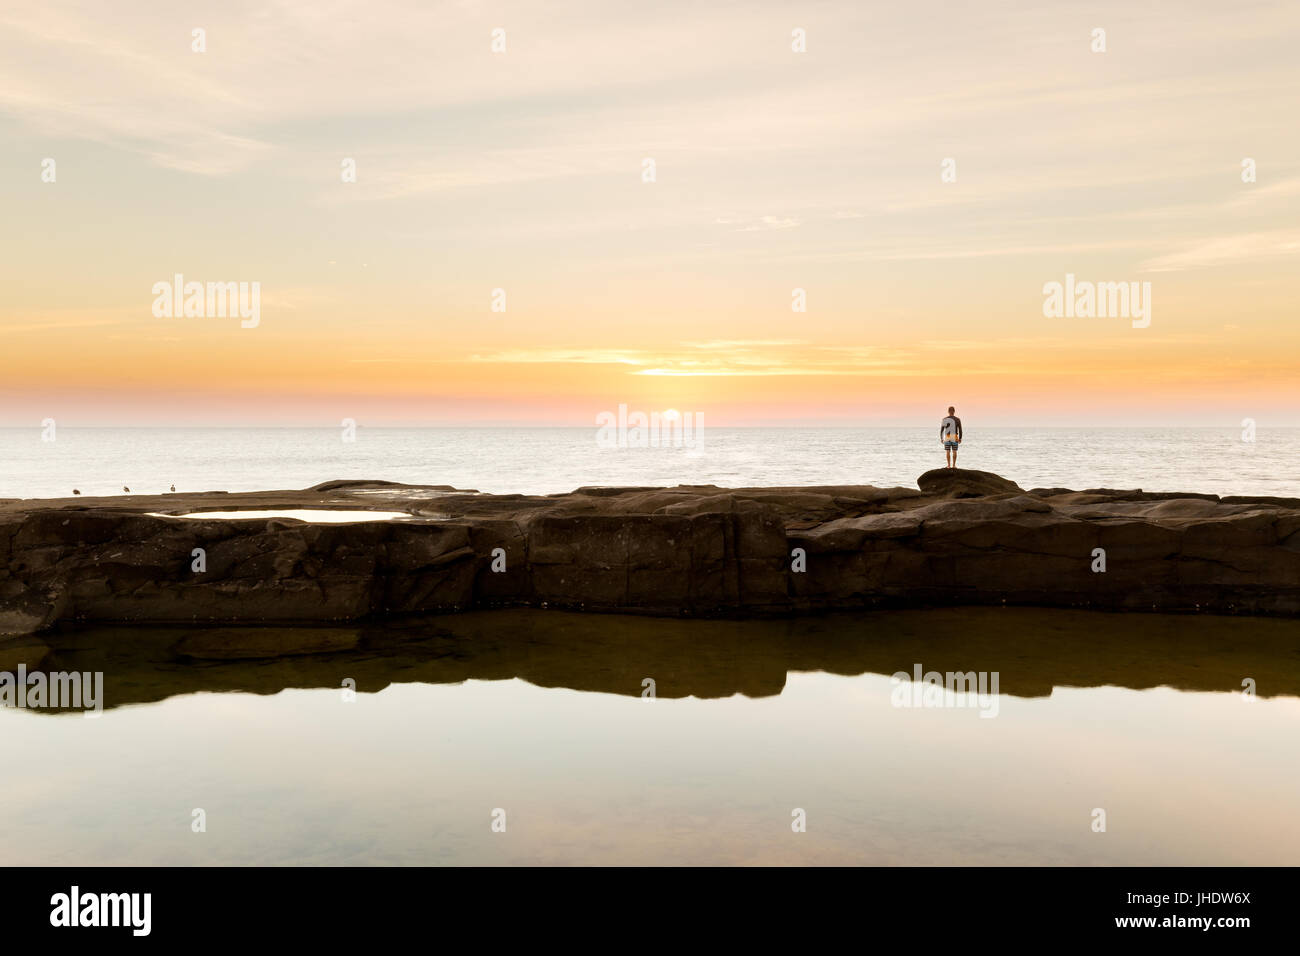 A silhouetted person watches the sunrise over the ocean on a beautiful coastline in Australia. - Stock Image